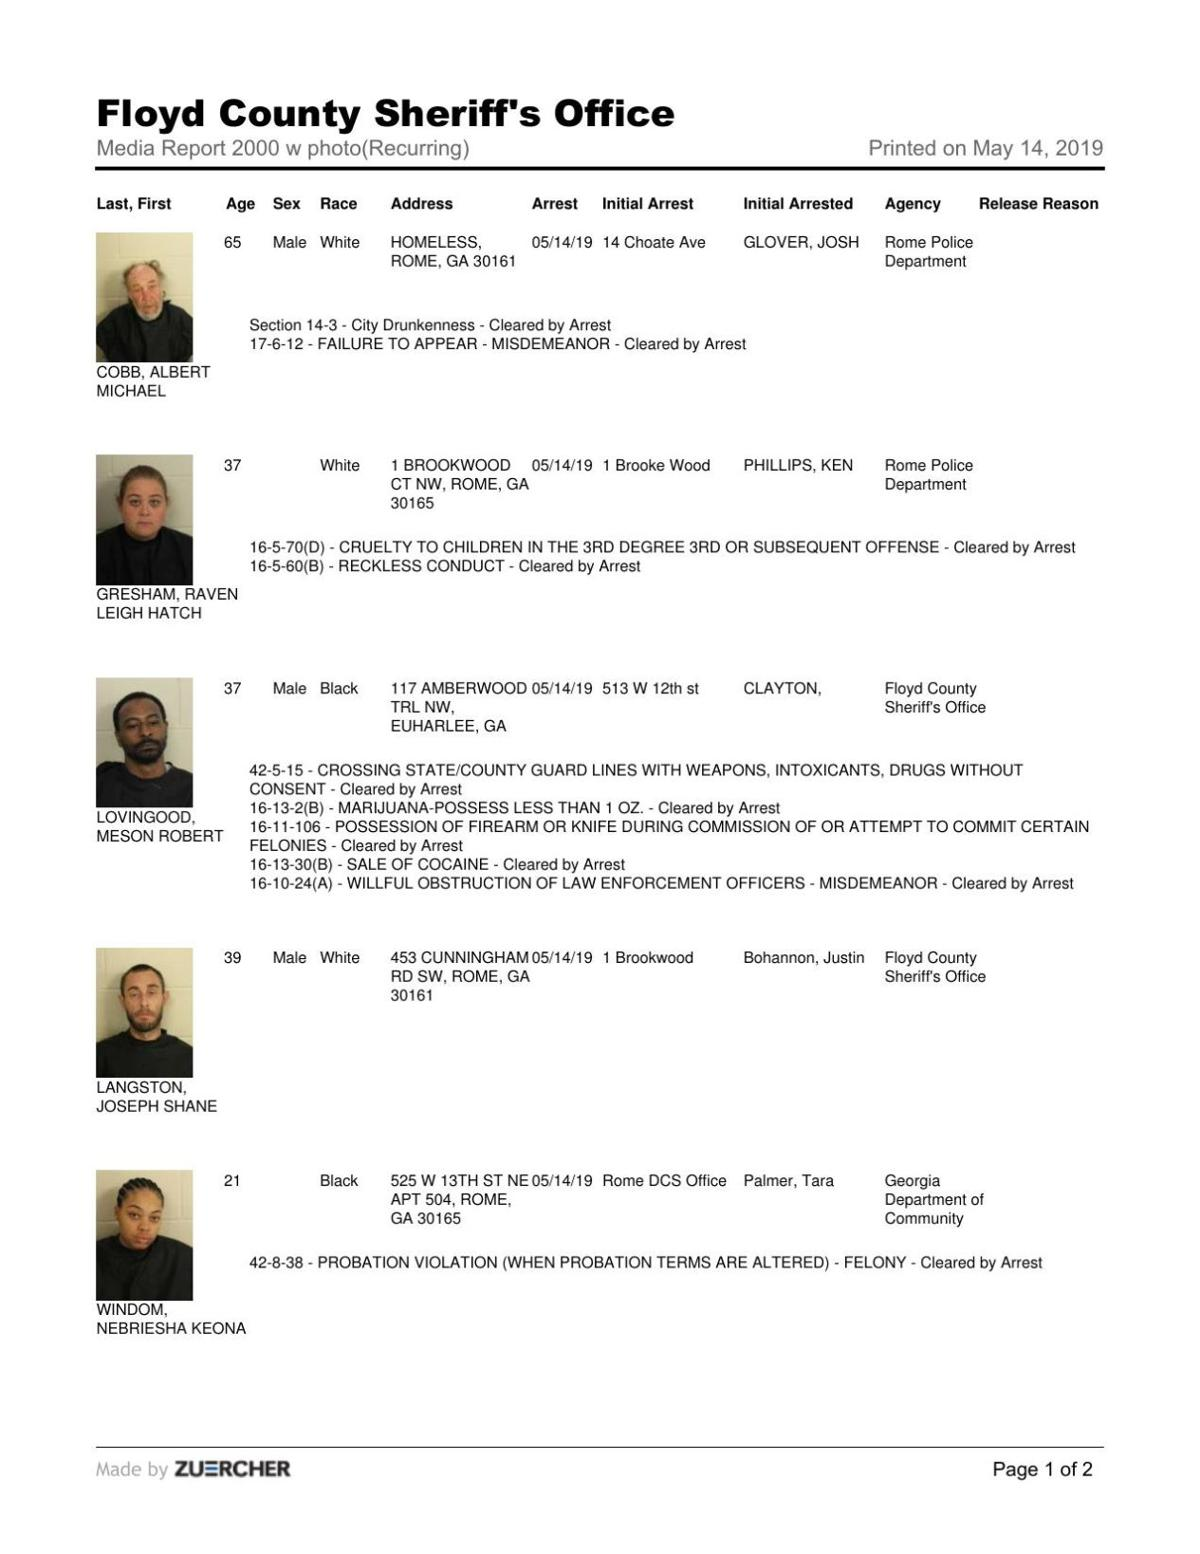 Floyd County Jail report for Tuesday, May 14